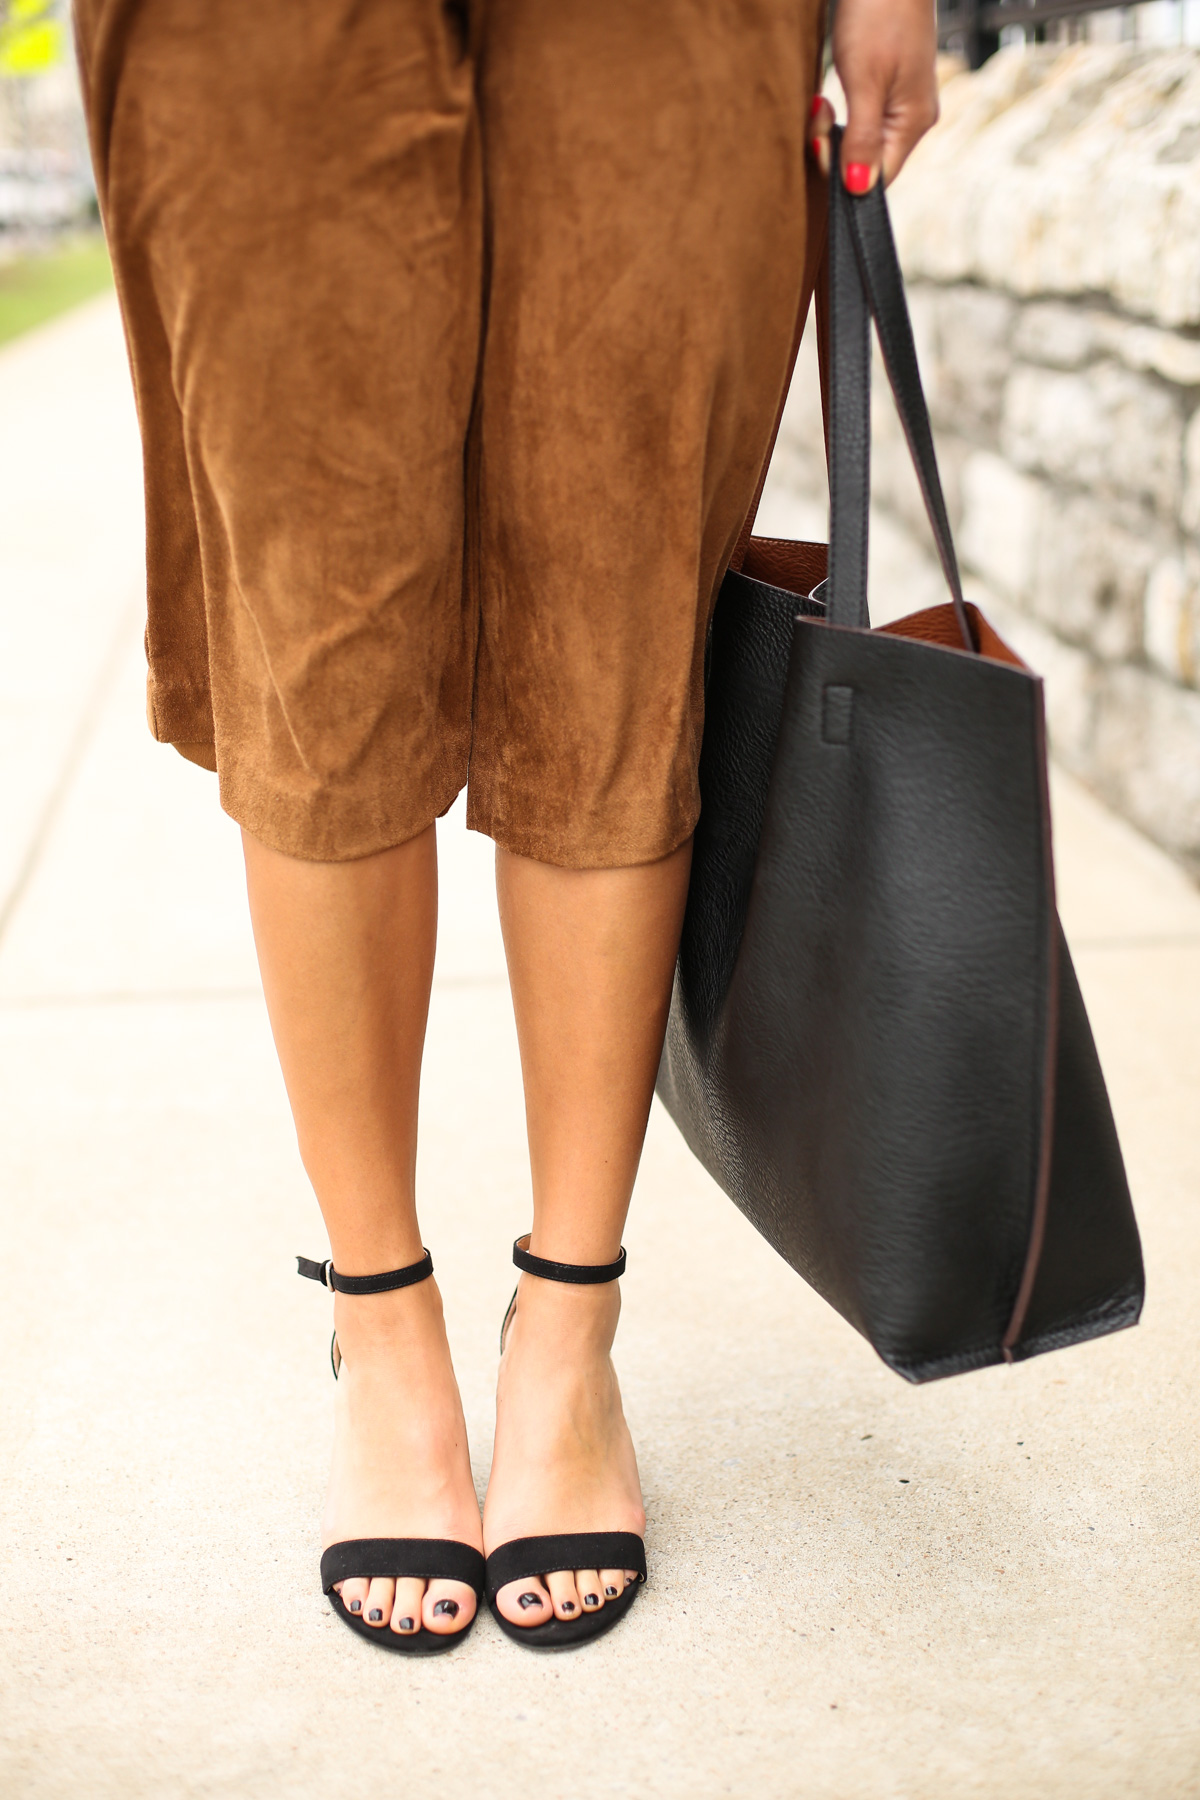 Priya the Blog, Nashville fashion blog, Nashville fashion blogger, Nashville style blog, Nashville style blogger, Spring fashion, Spring office outfits, wear to work Springtime, how to style culottes, suede culottes,